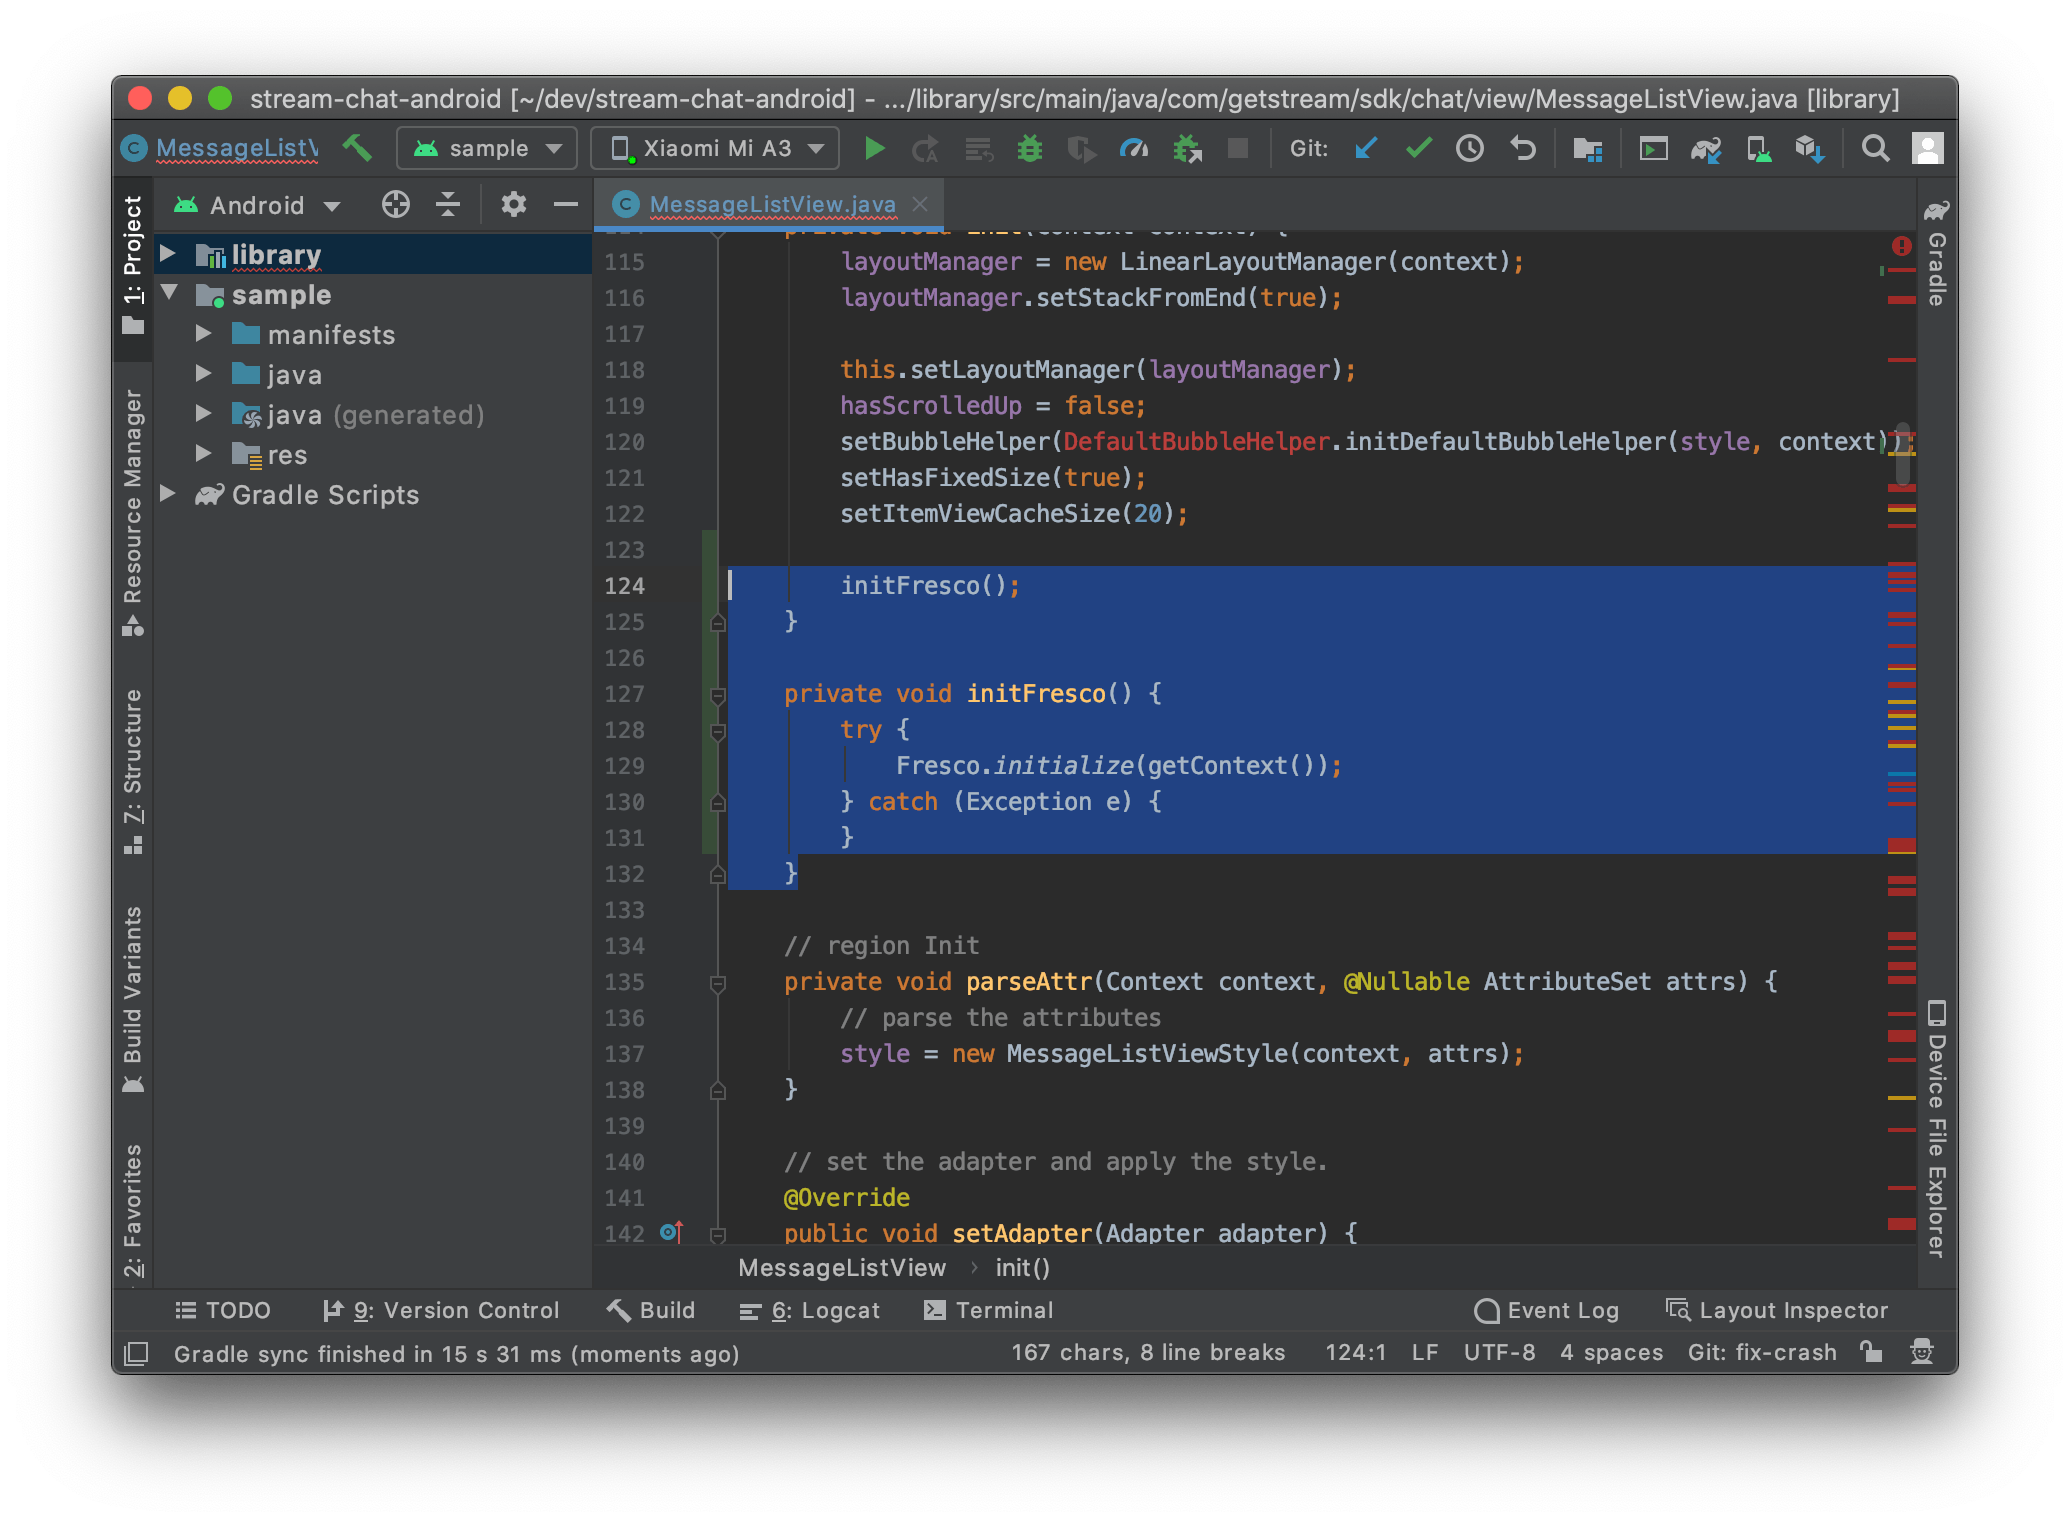 Image shows Android Studio with changes made to the MessageListView file to initialize the Fresco library